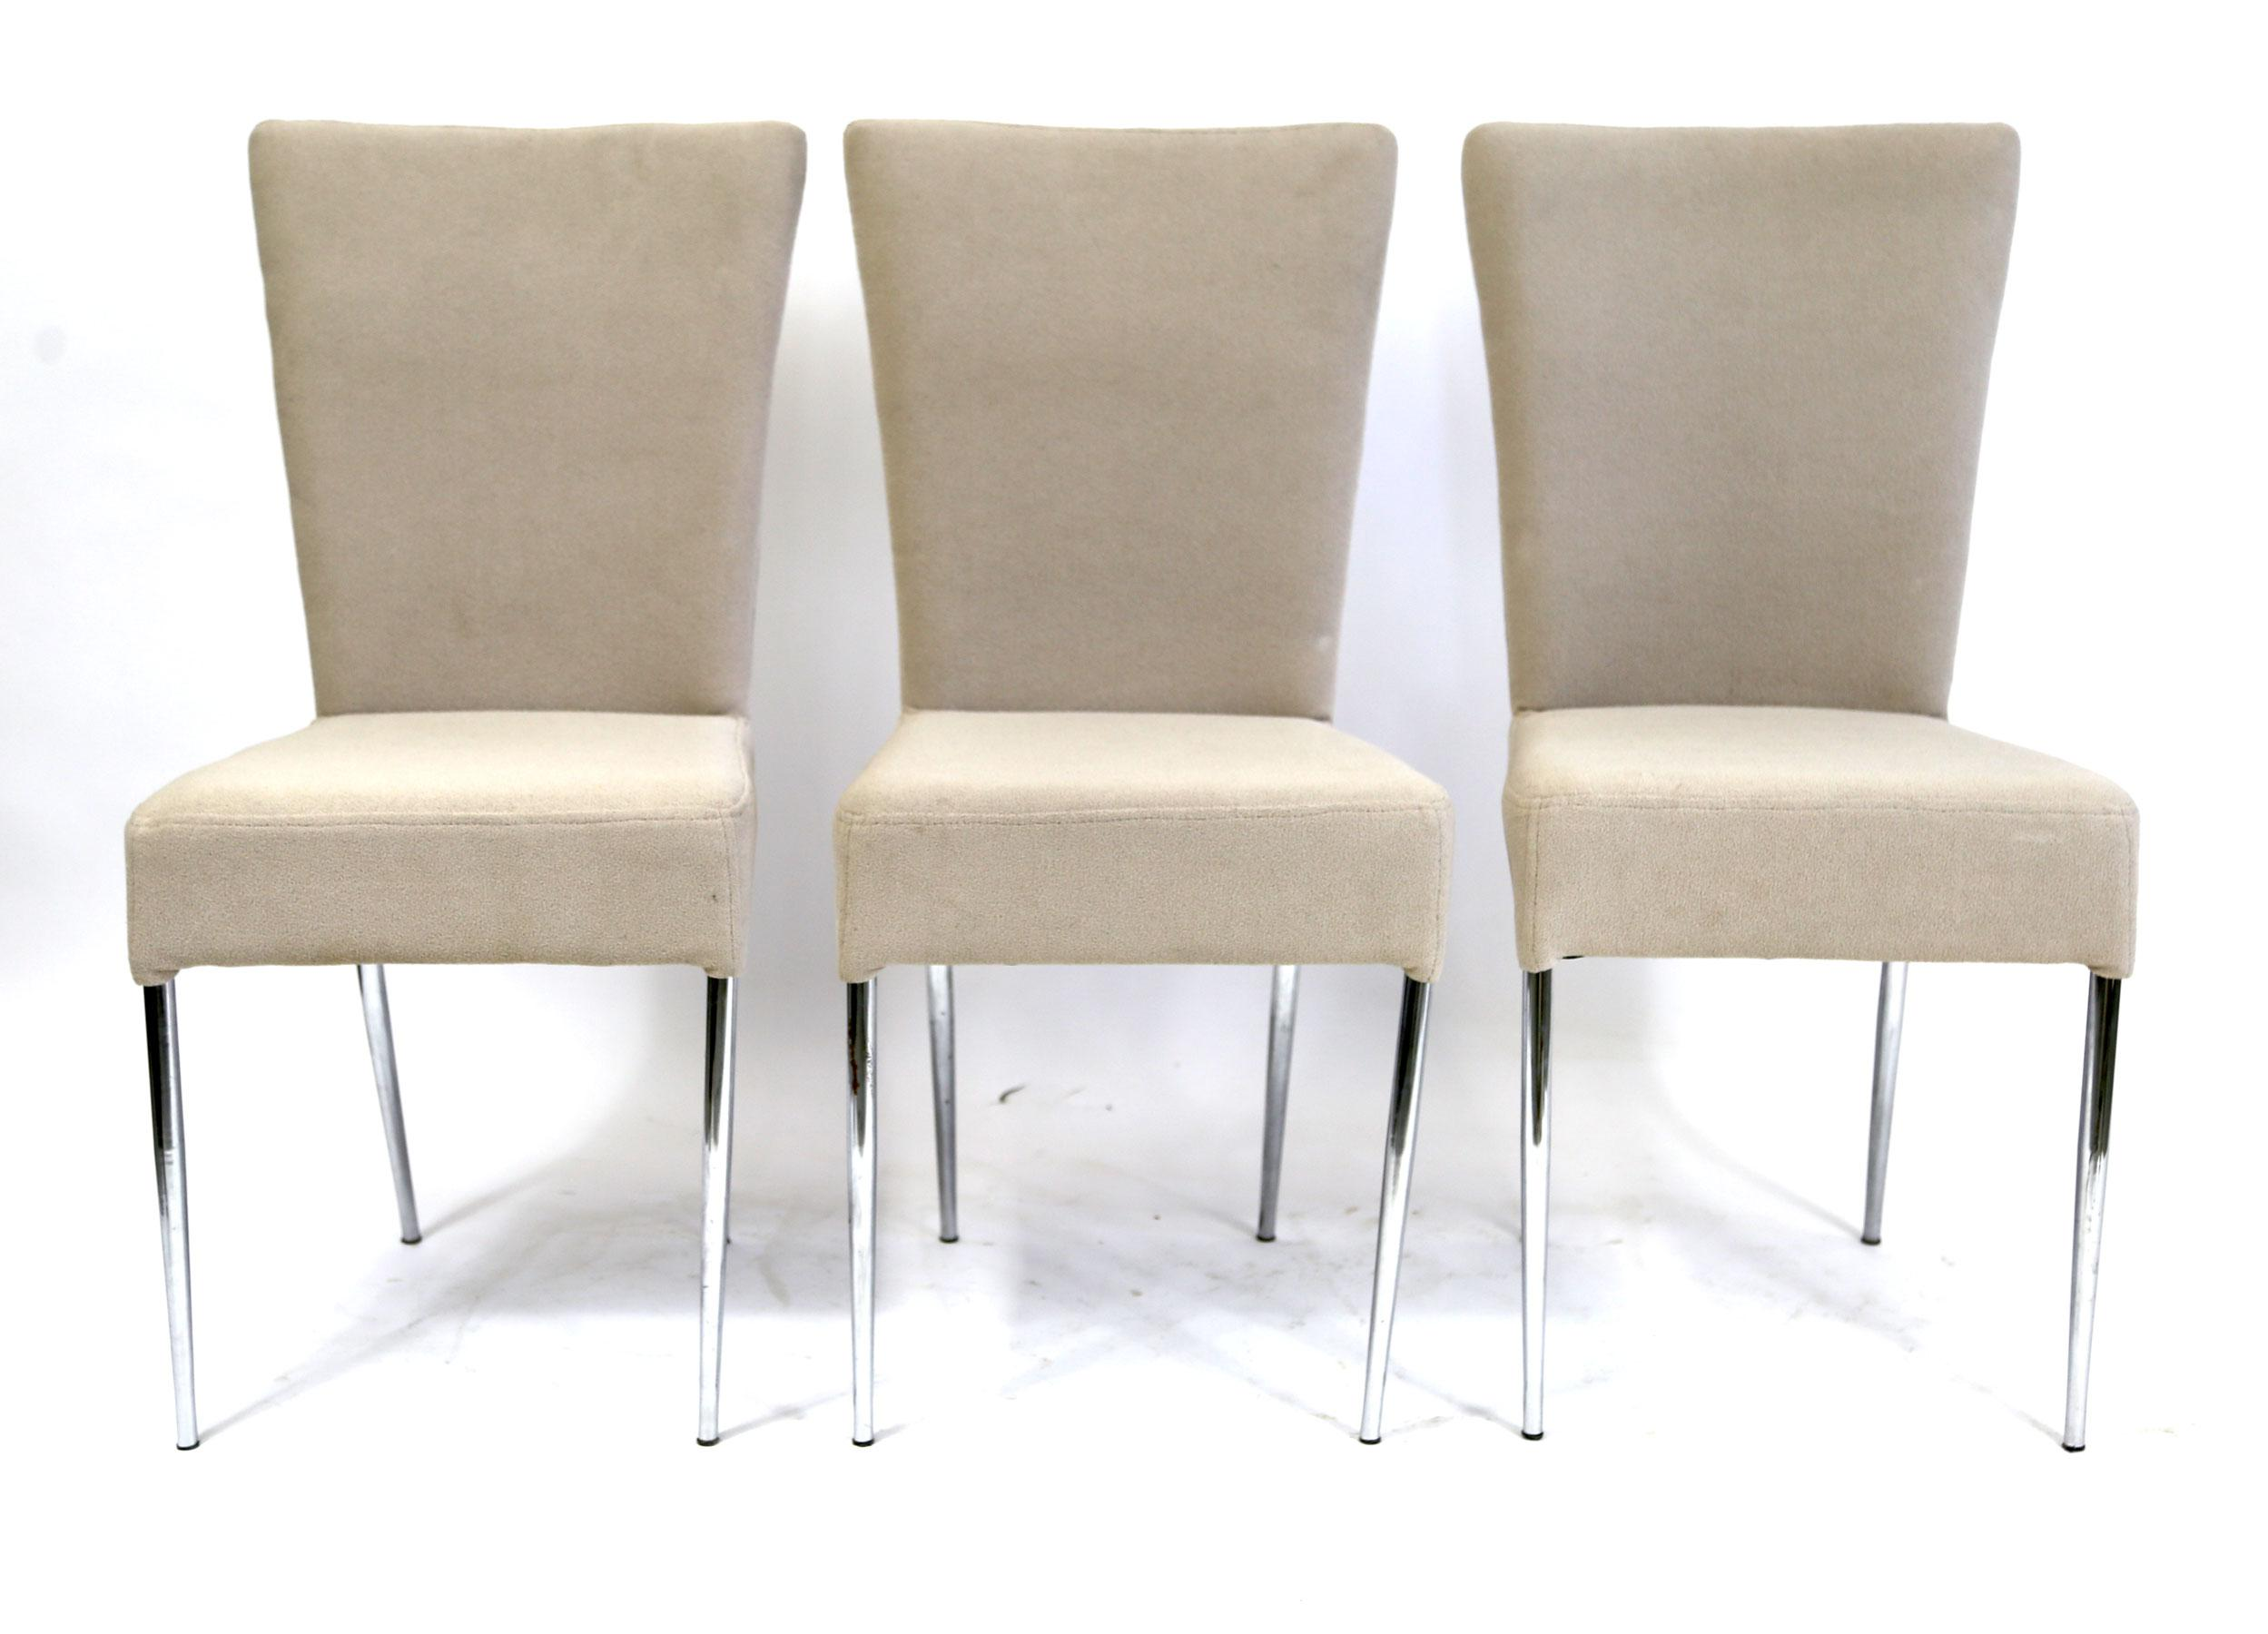 A Set Of Three Chairs With A Pleasing Greyish Brown Fabric Upholstery And  Chrome Legs.